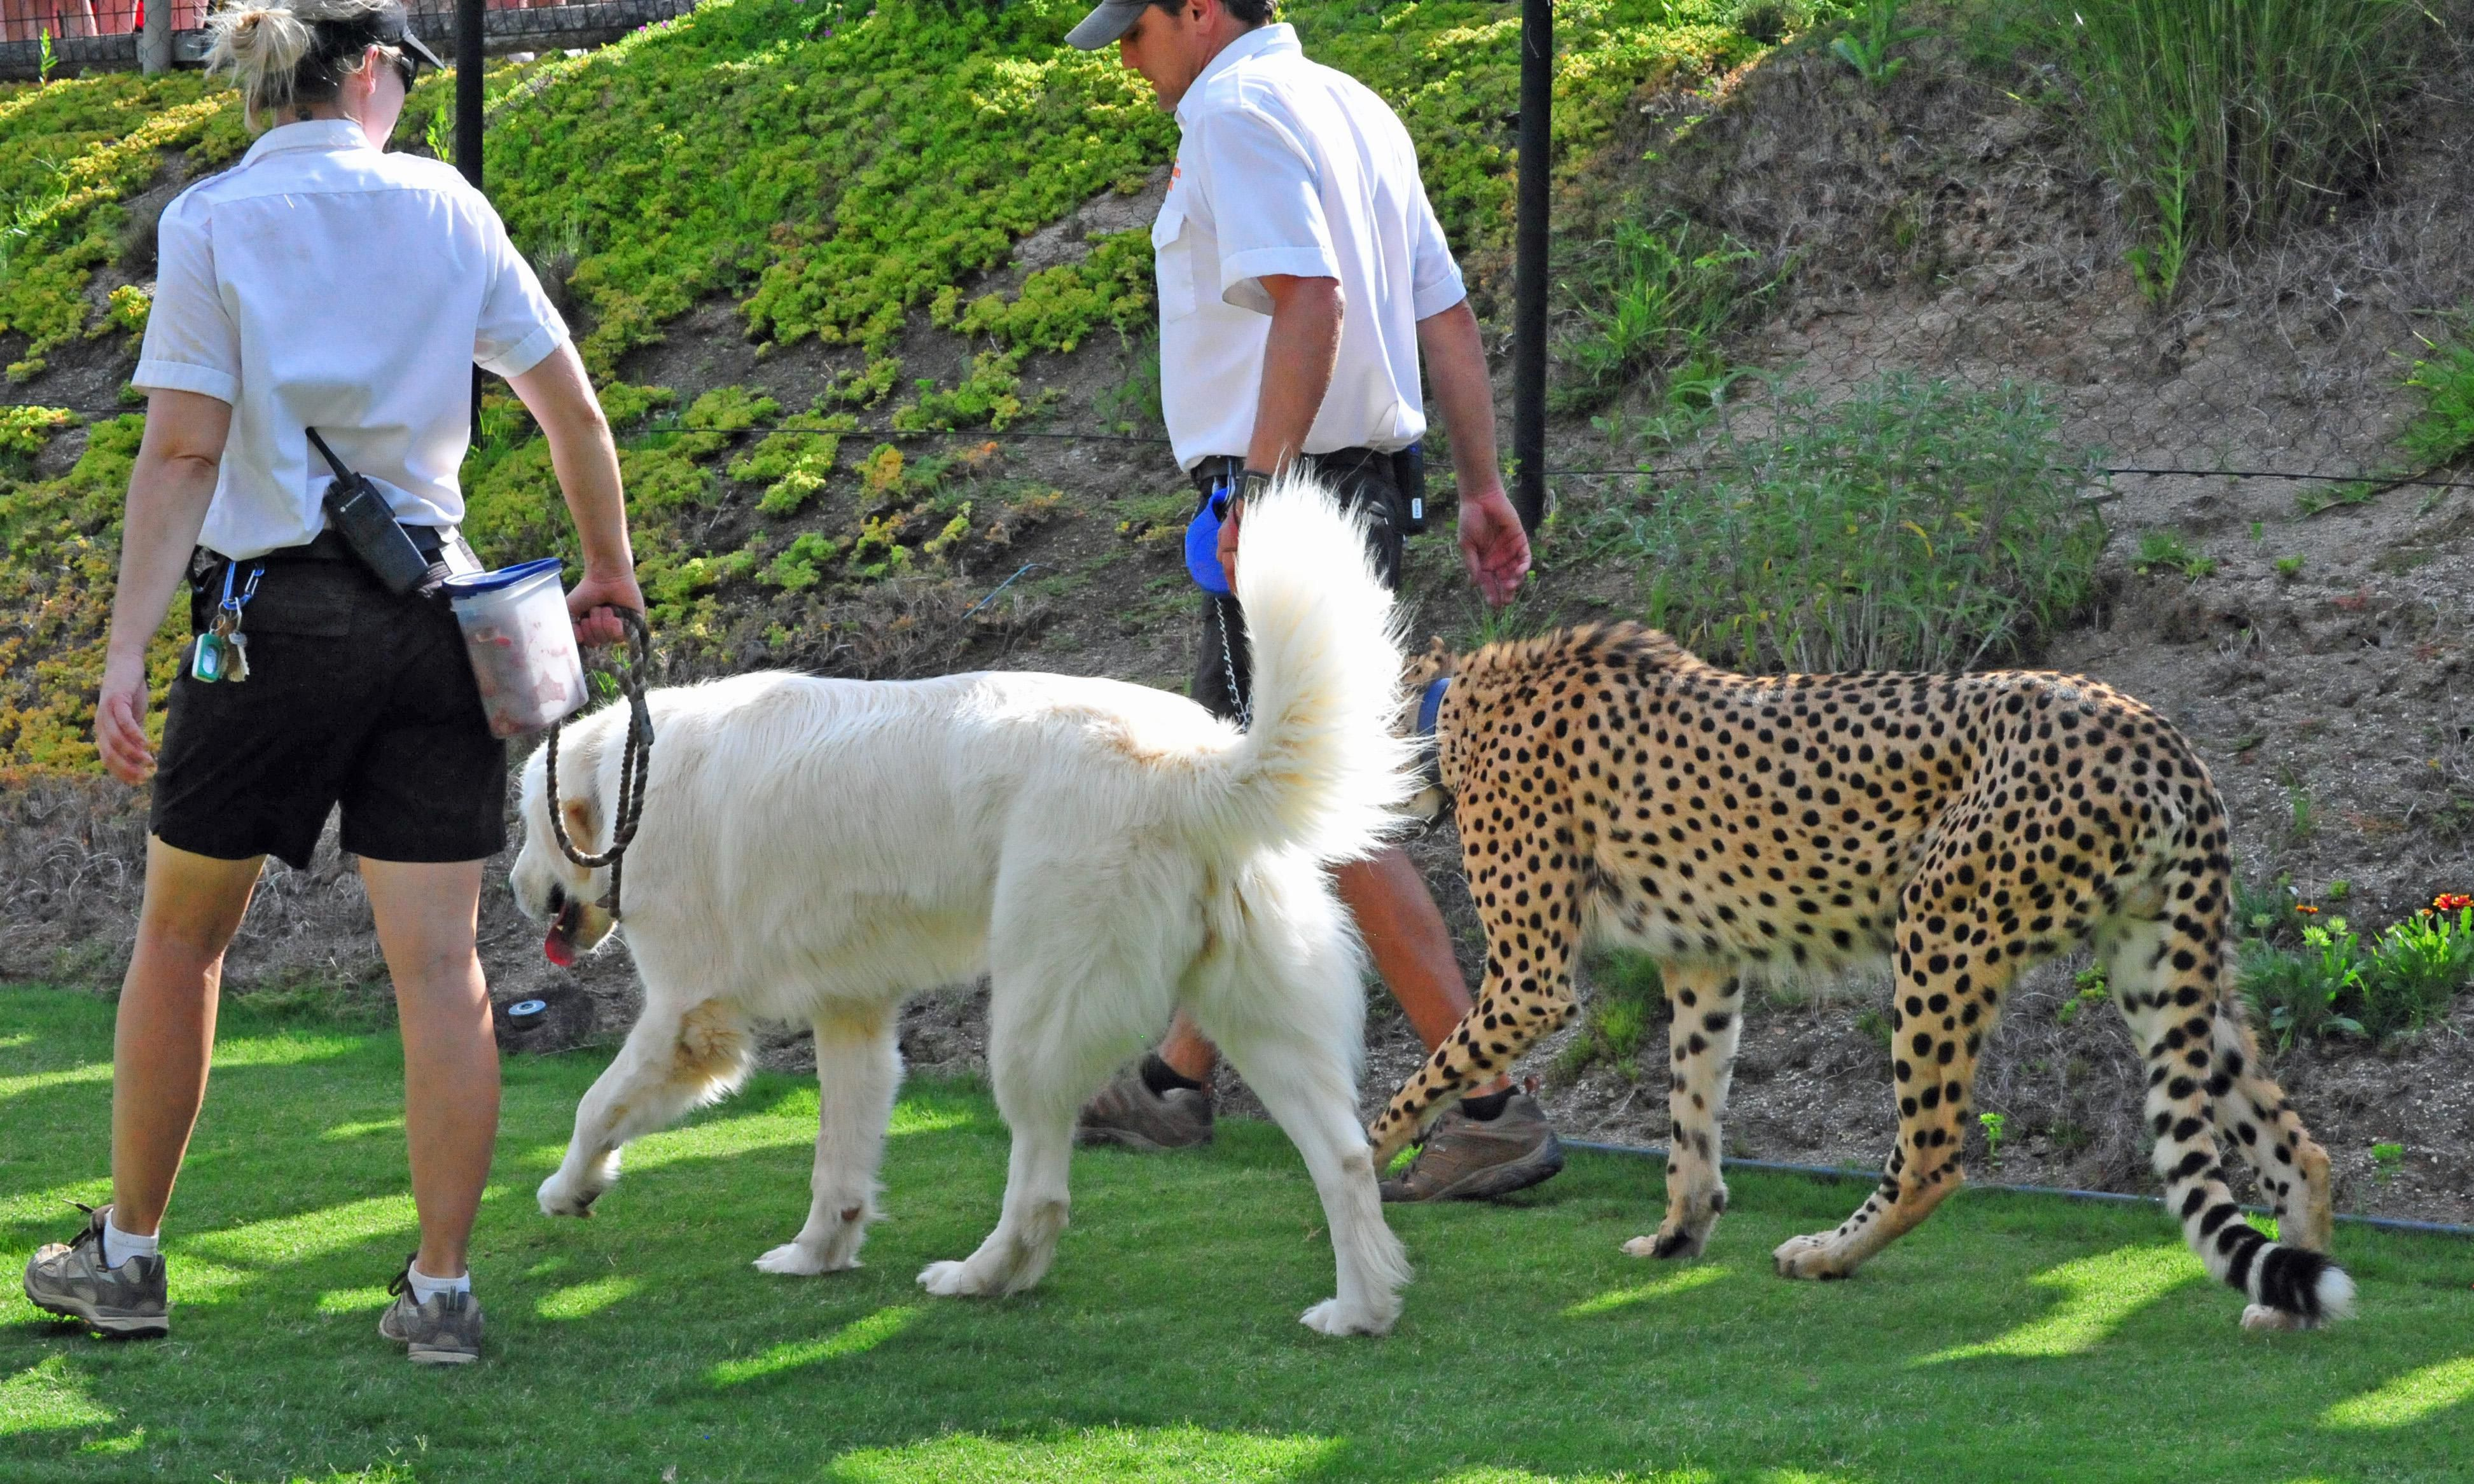 How Dogs Are Helping Cheetahs - Cheetahs can be so shy that zoos give them emotional support dogs